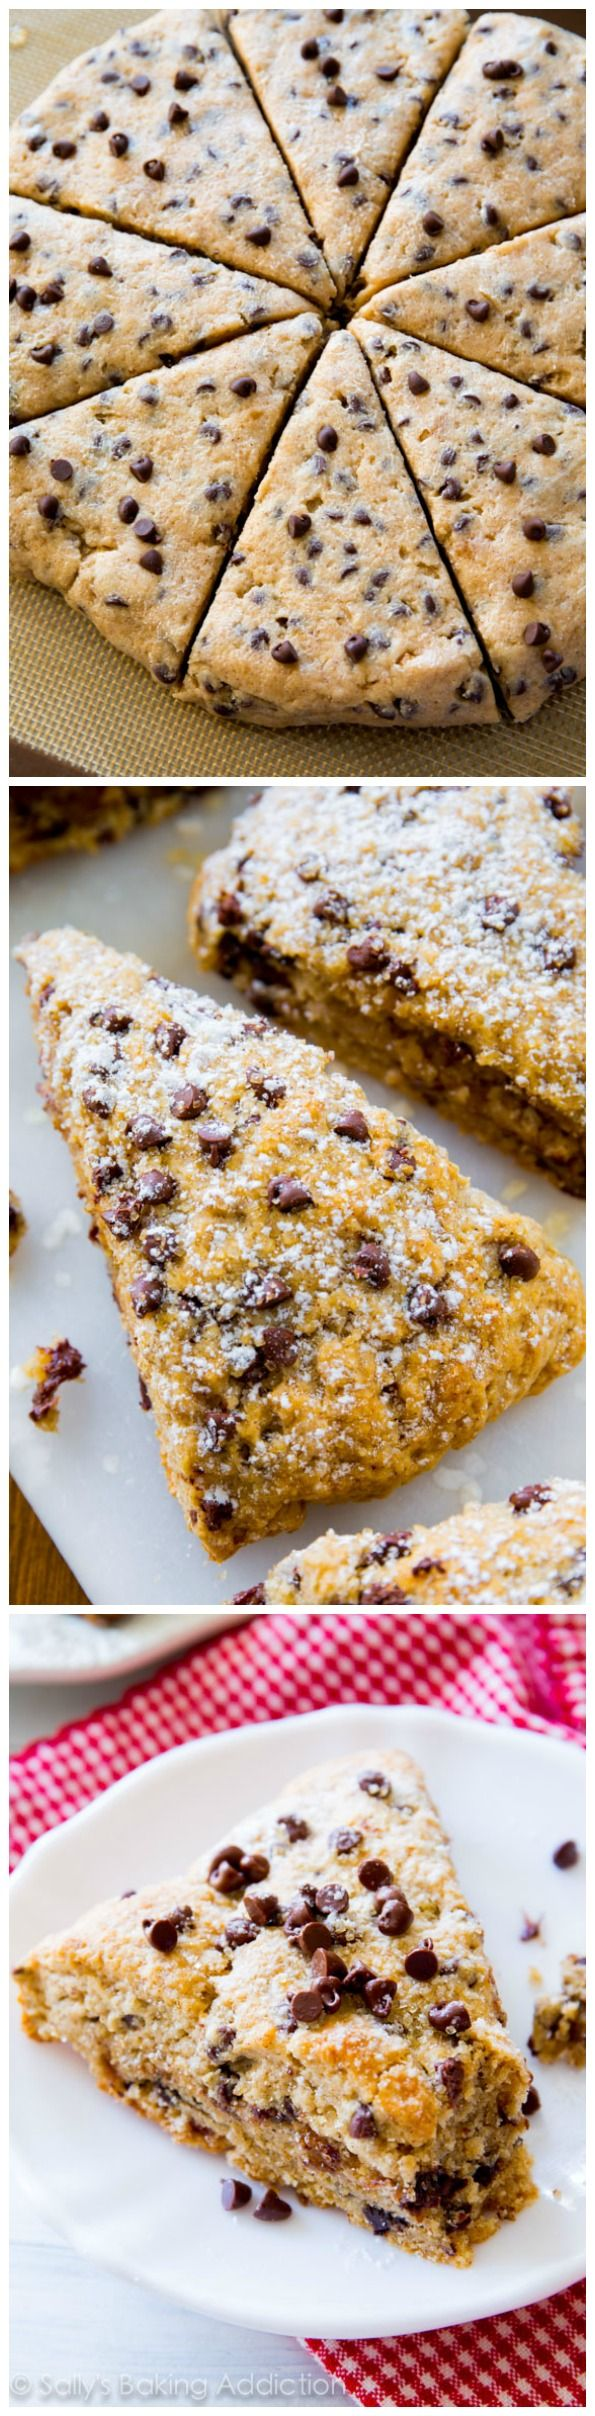 Melt-in-your-mouth Chocolate Chip Scones. Tender, moist, and so easy to make! They taste like soft chocolate chip cookies.